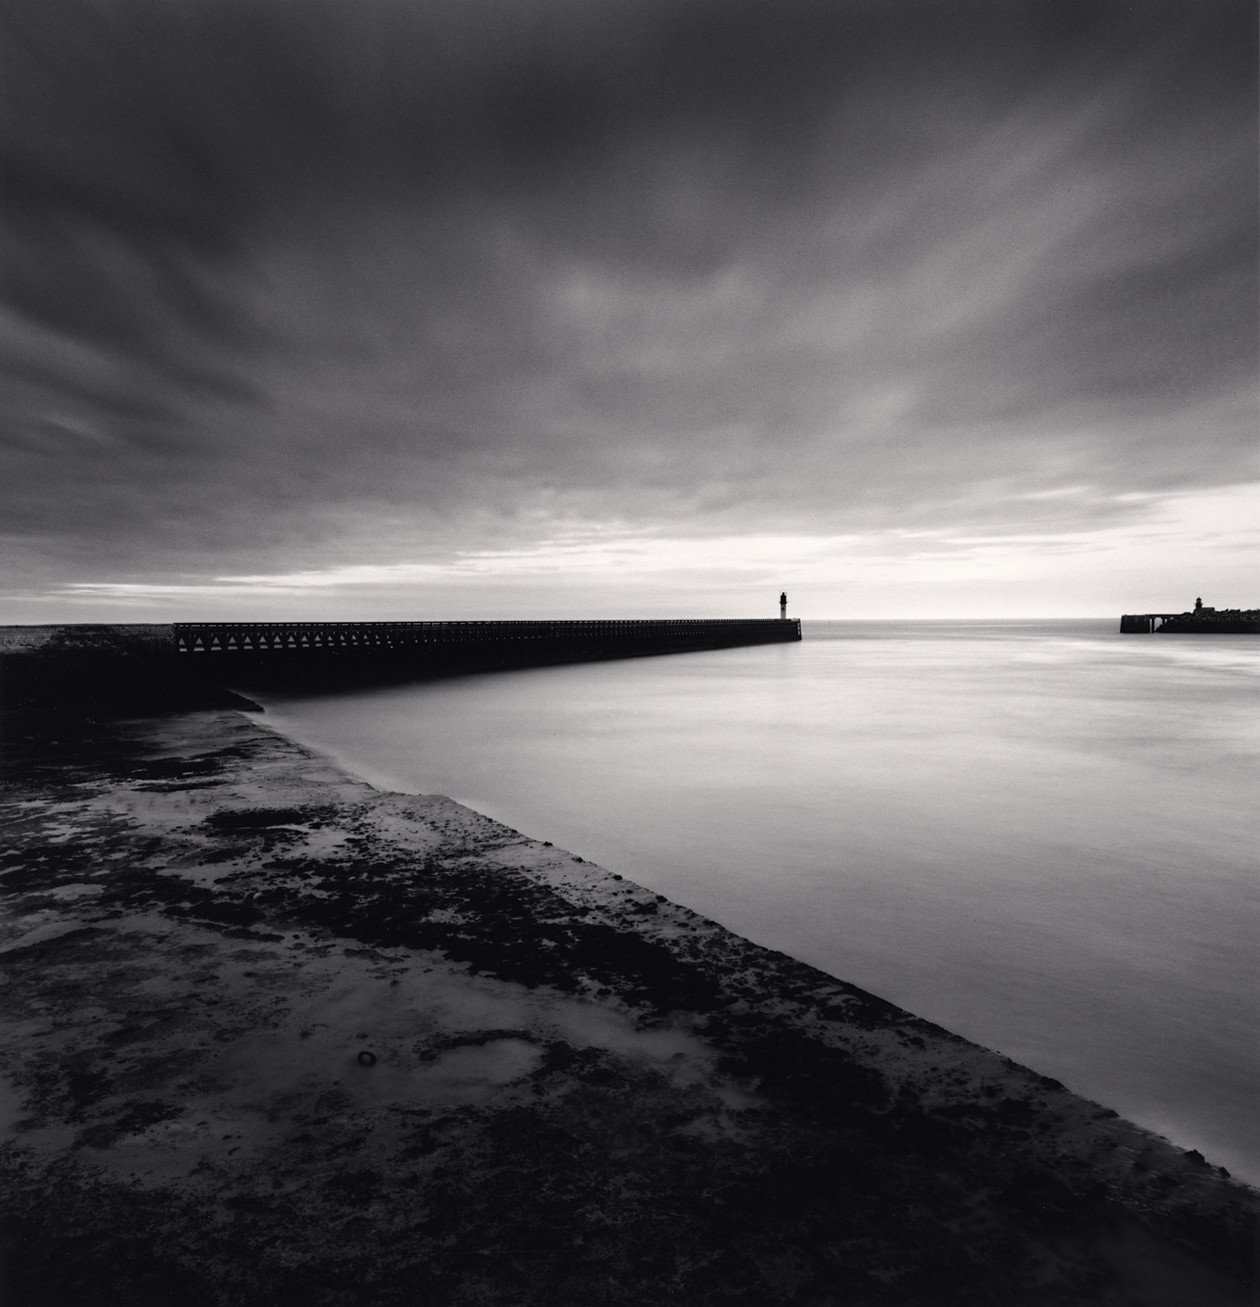 Channel Crossing, Calais (1997) by Michael Kenna